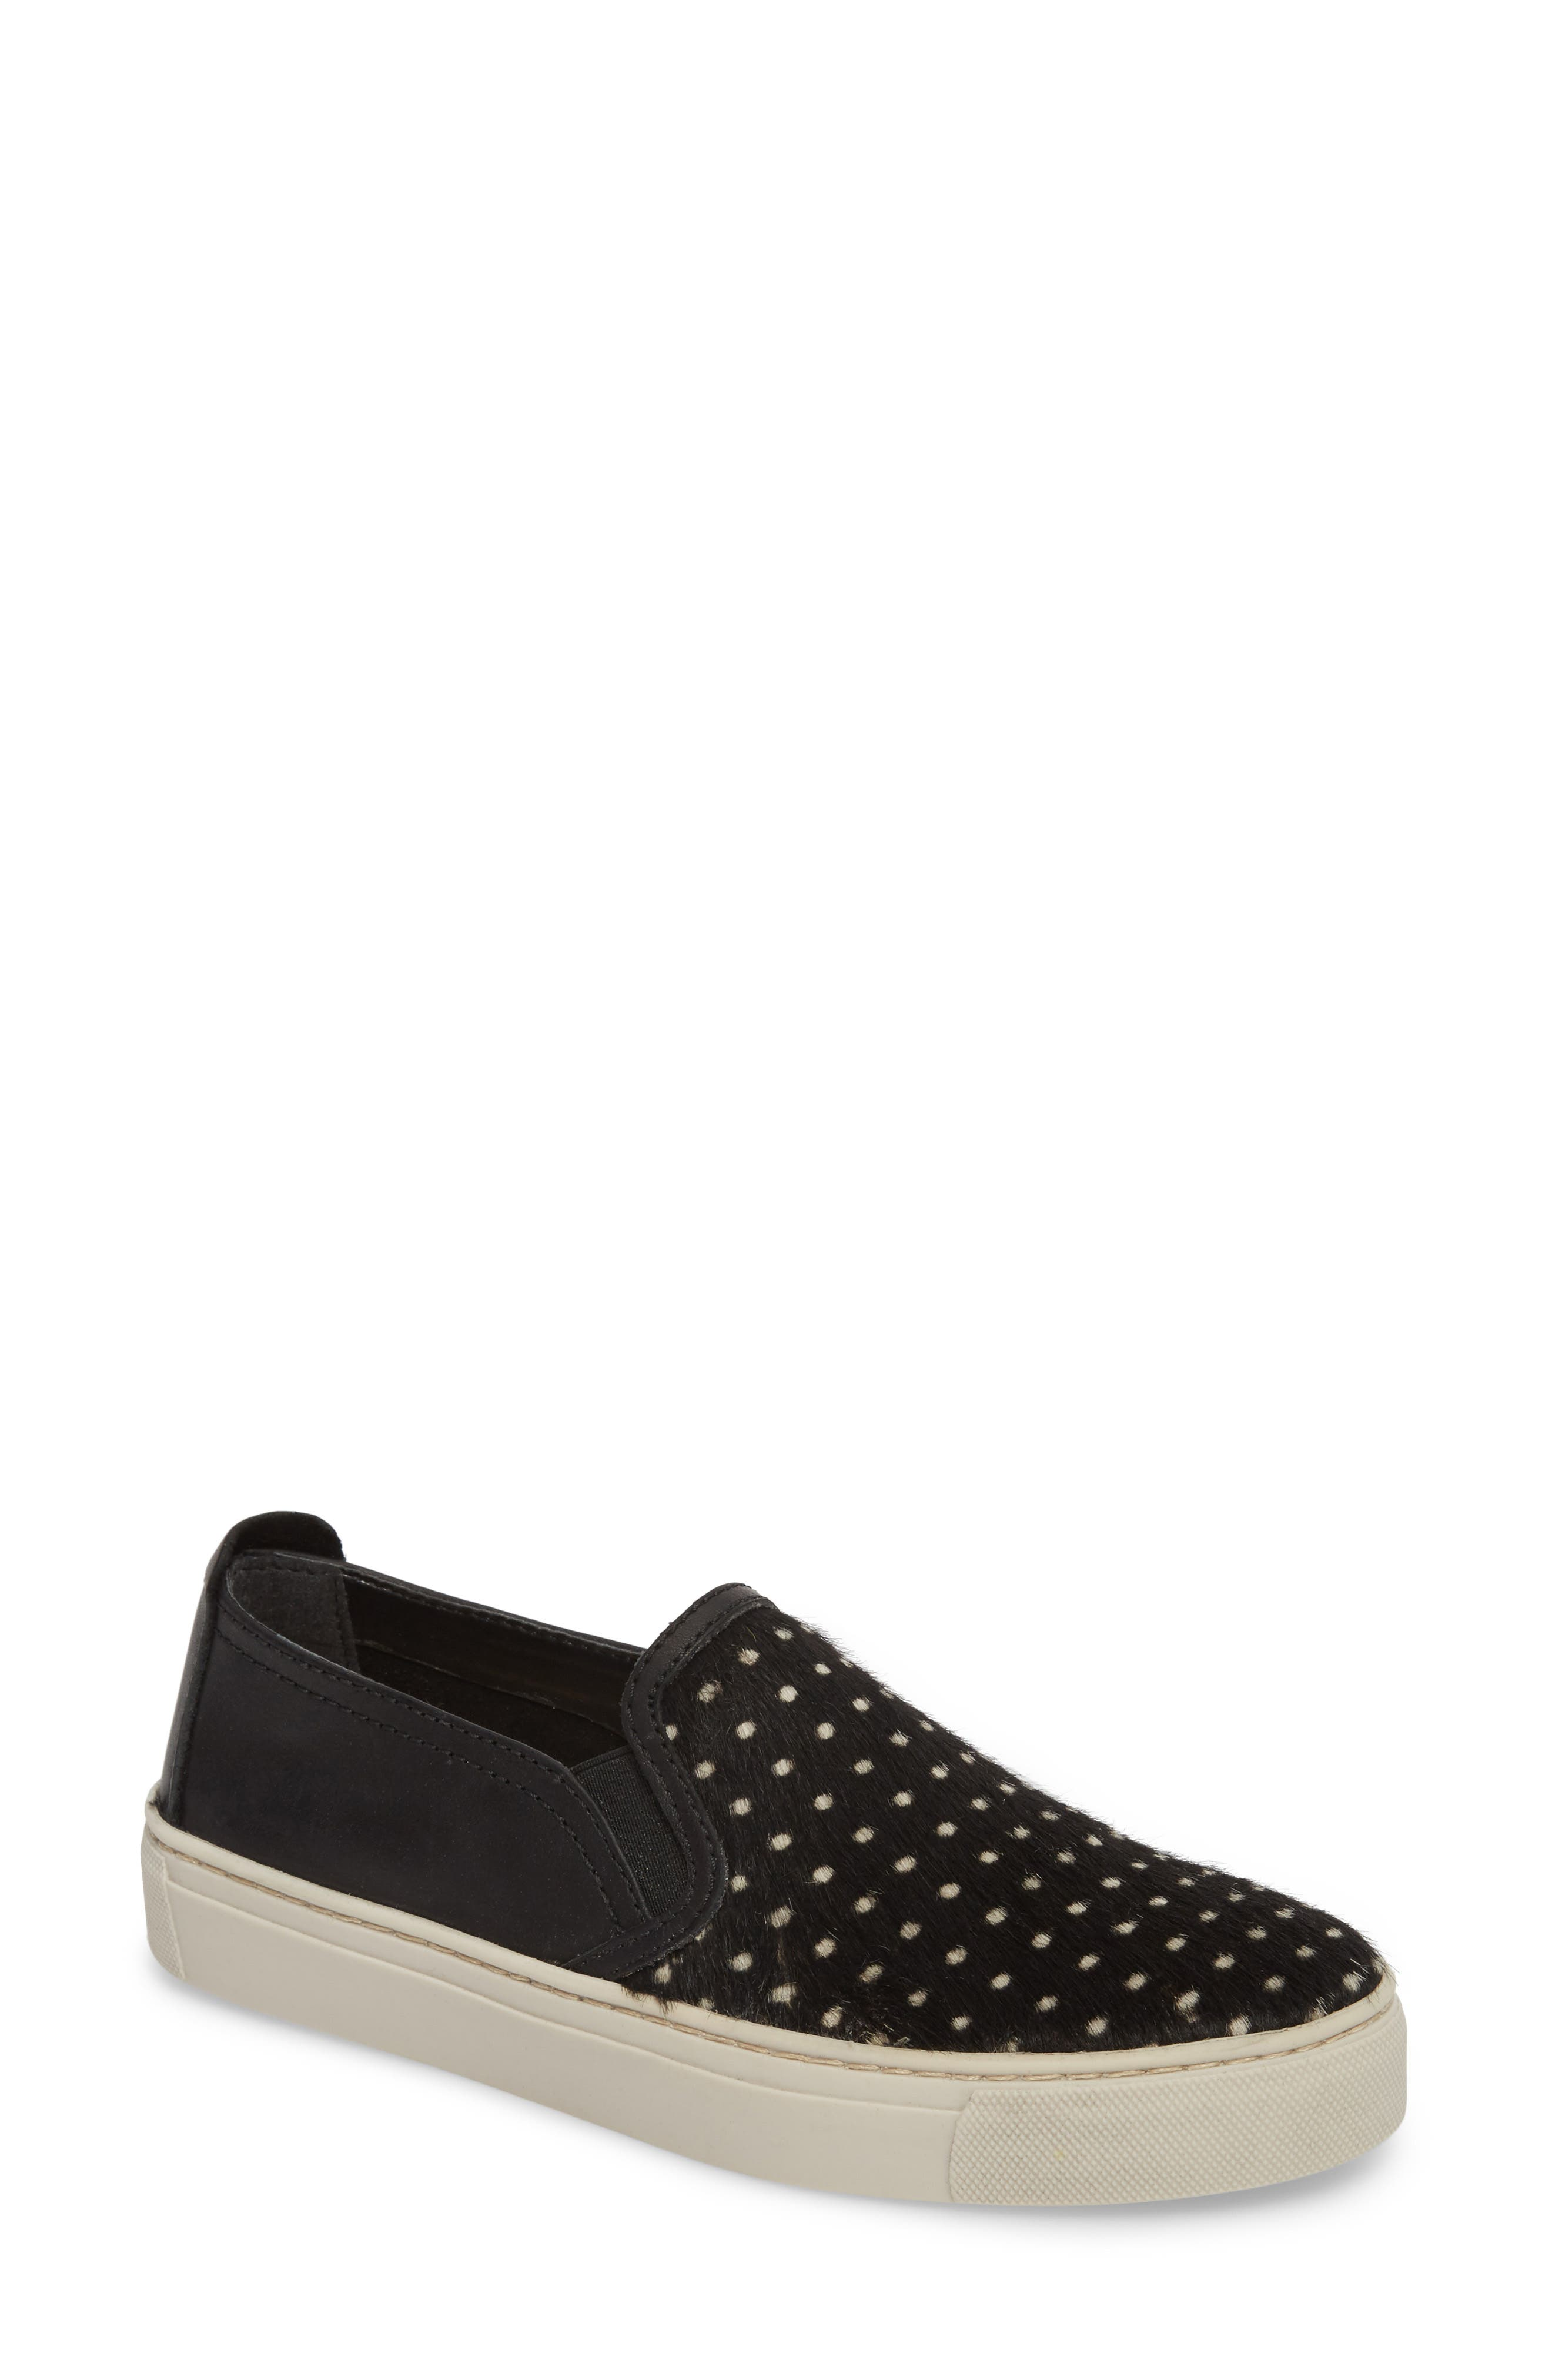 Sneak About Slip-On Sneaker,                             Main thumbnail 1, color,                             BLACK POLKA DOT LEATHER